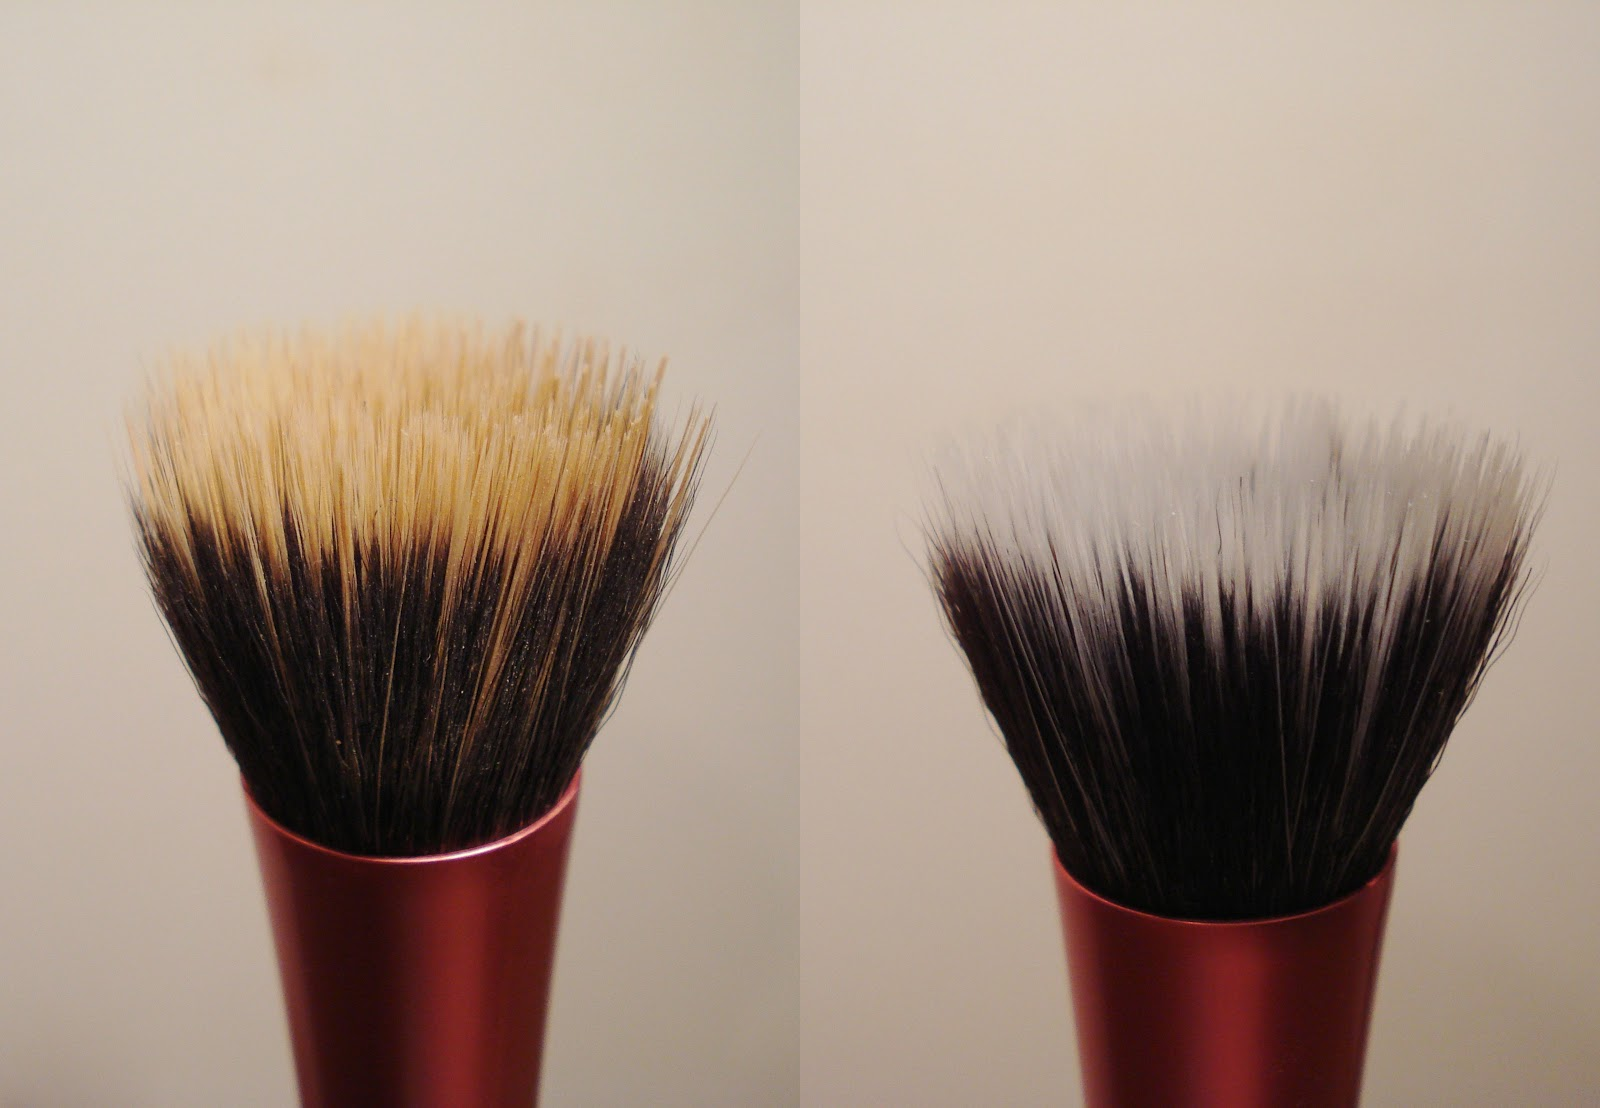 how to clean very dirty hair brushes